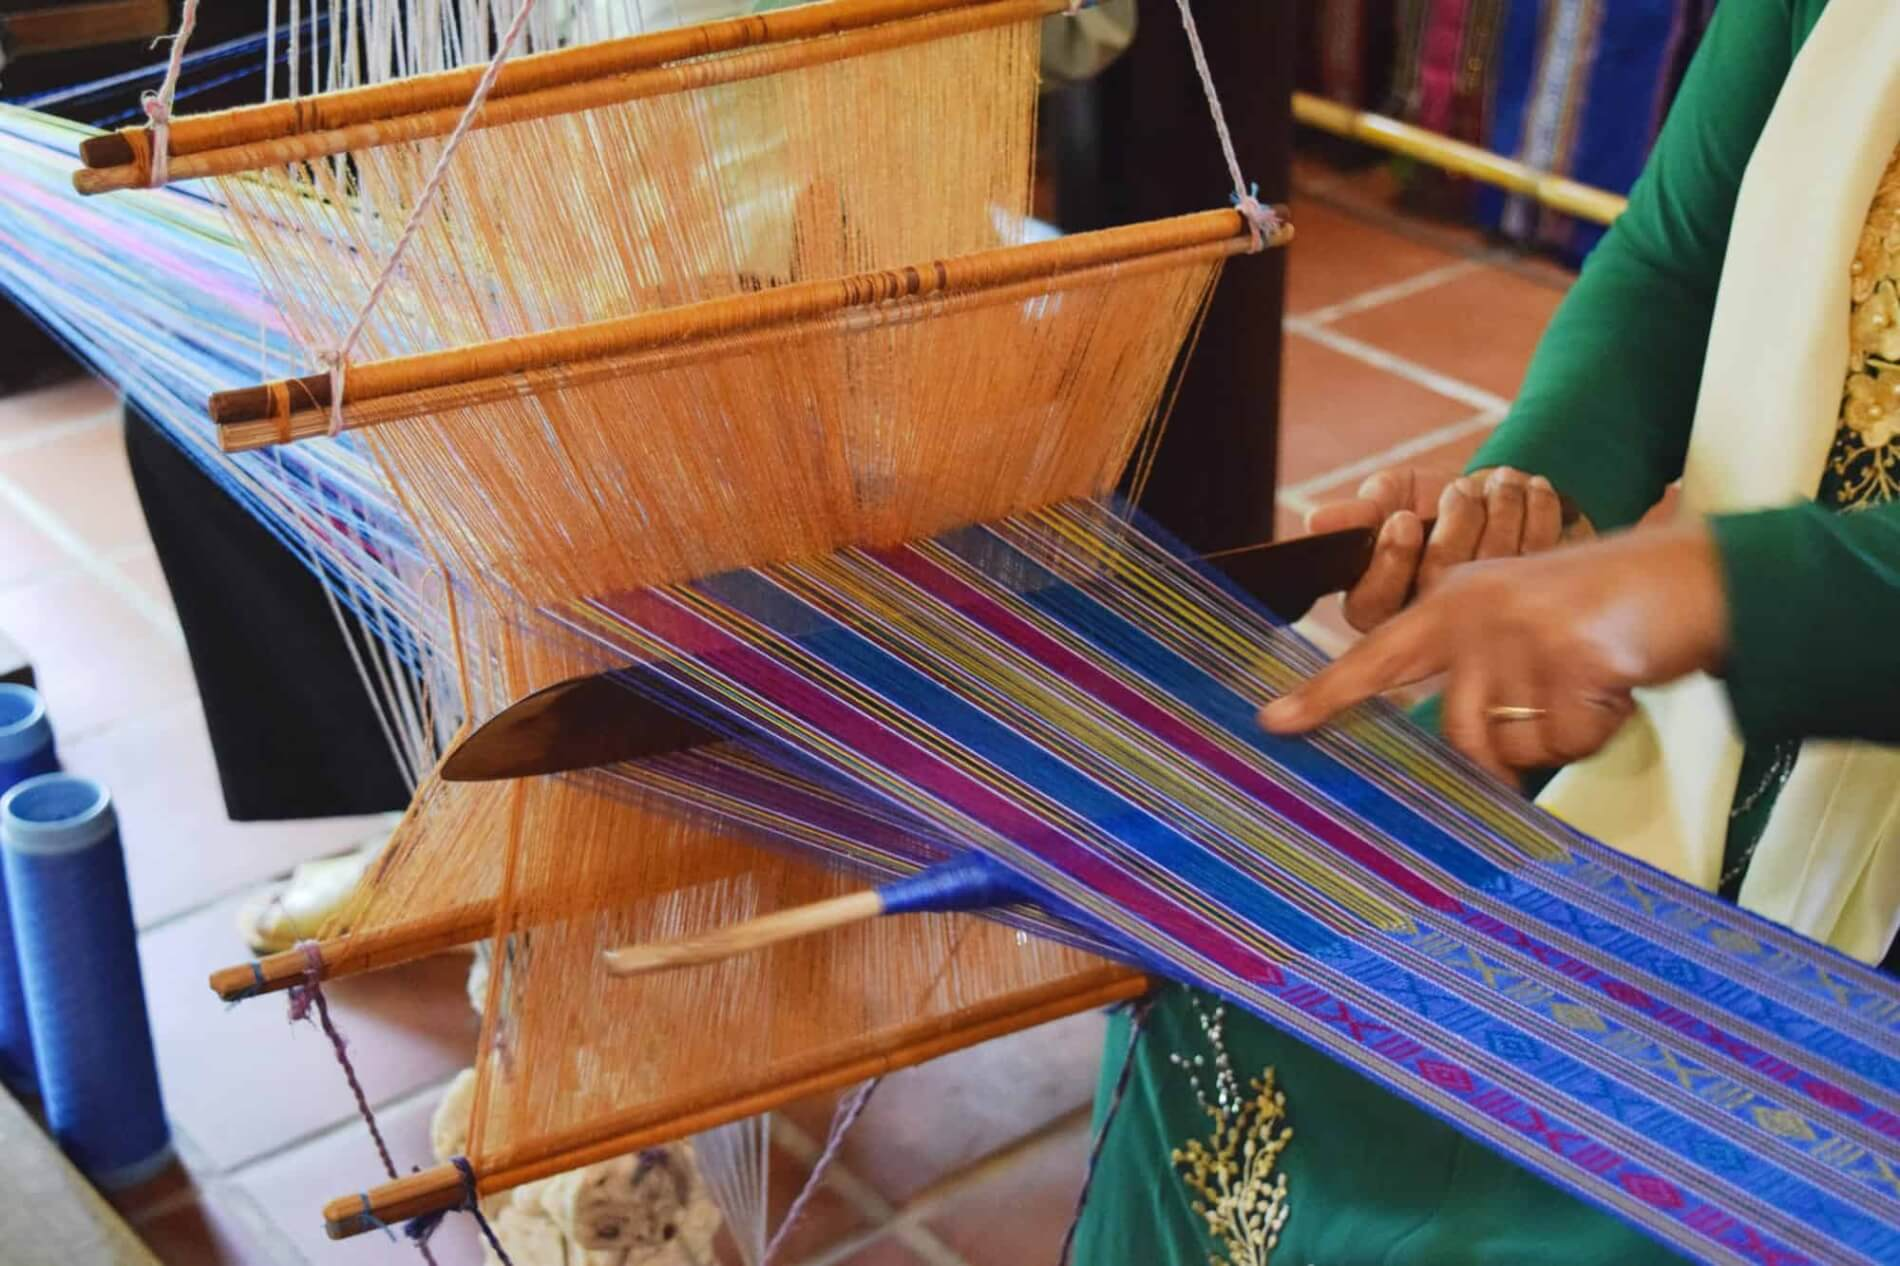 Hoi An Silk Village - silk weaving